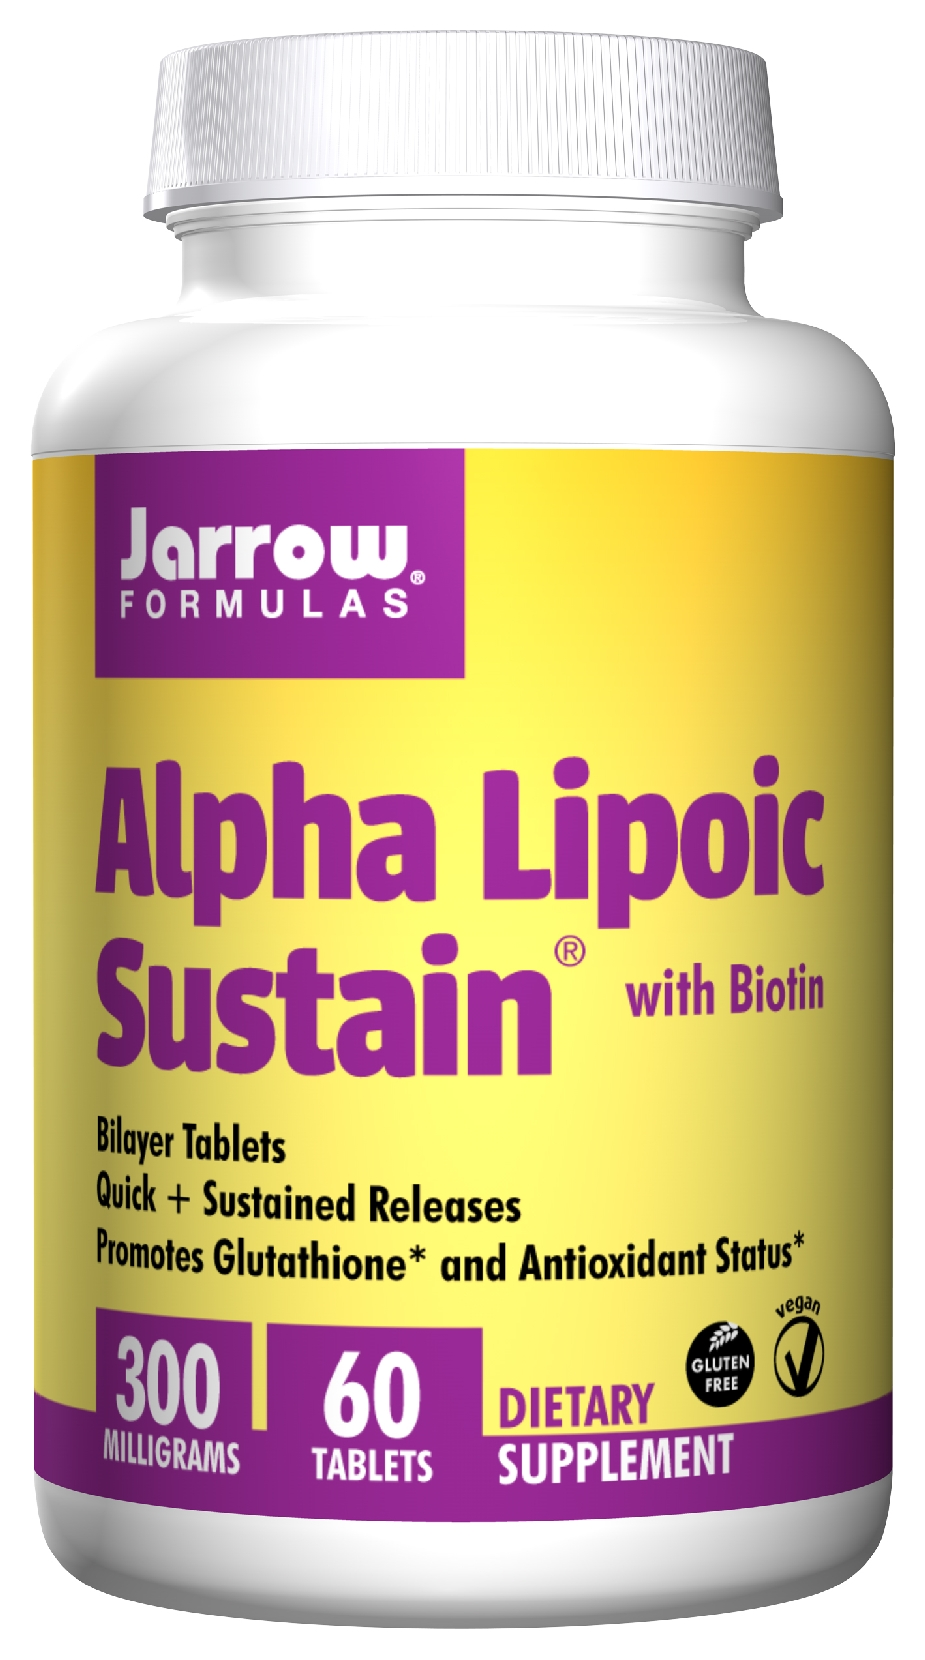 Alpha Lipoic Sustain 300 with Biotin 300 mg 60 Sustain tabs by Jarrow Formulas